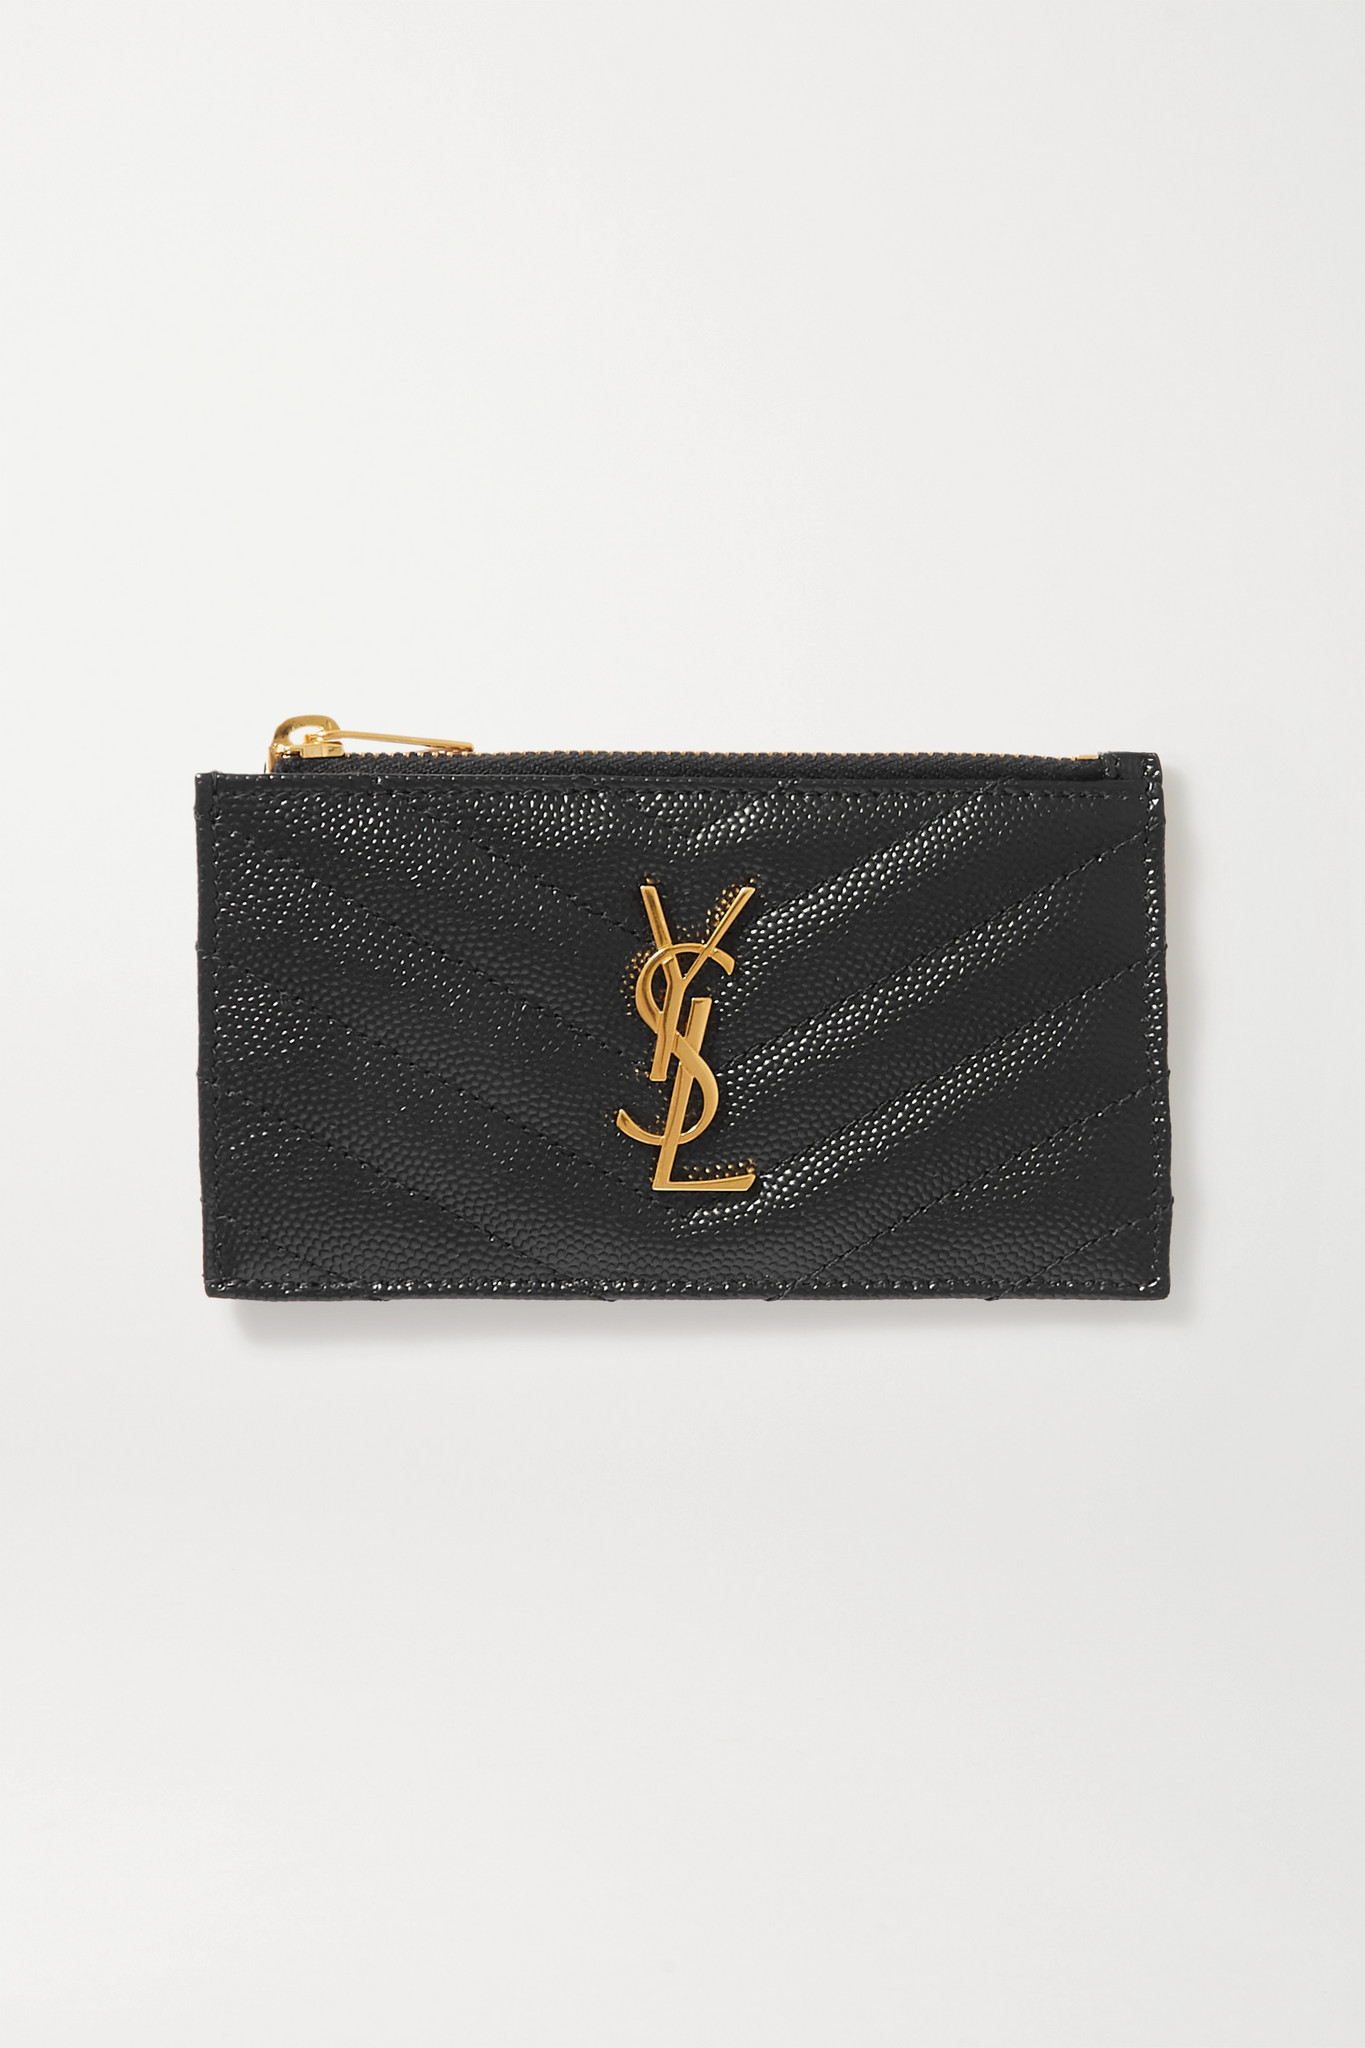 SAINT LAURENT - Monogramme Small Quilted Textured-leather Wallet - Black - one size